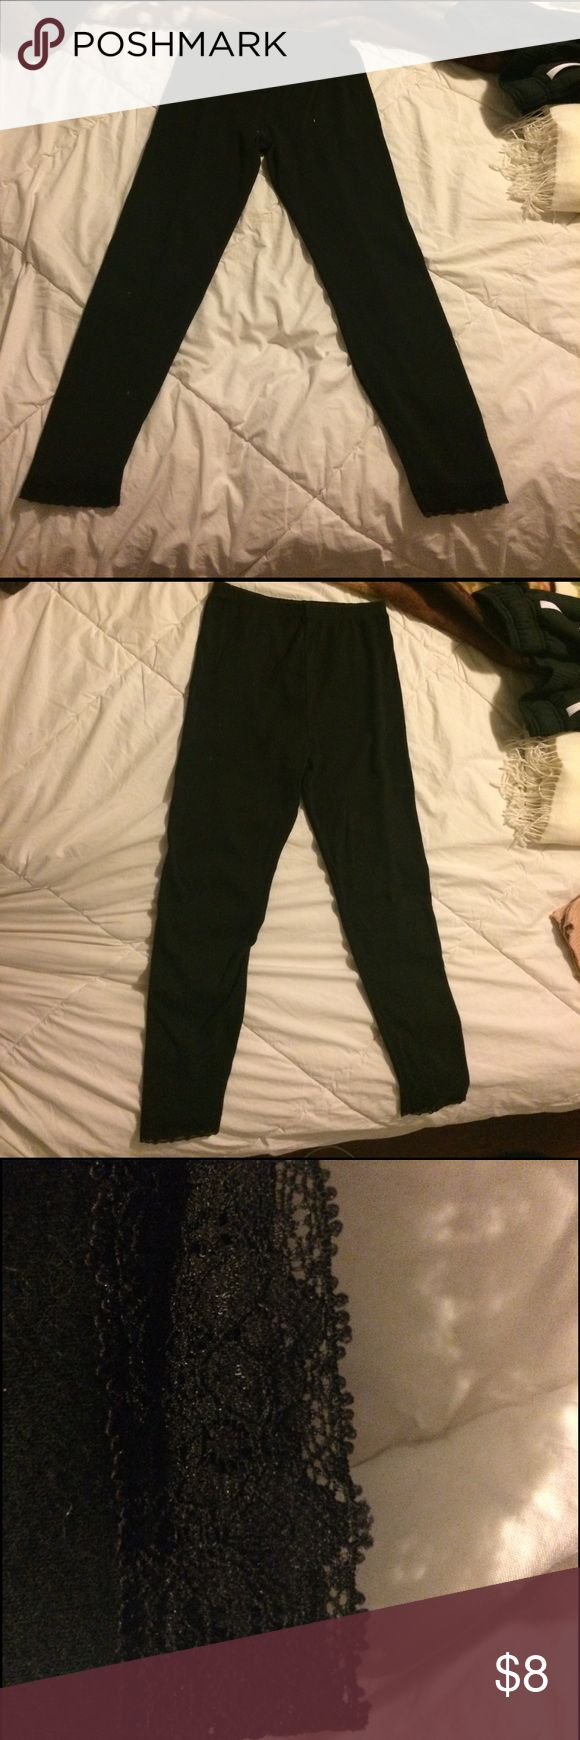 Girls black leggings Girls black leggings with cute lace at the bottom (see picture)  very comfortable. Large 10/12 Bottoms Leggings